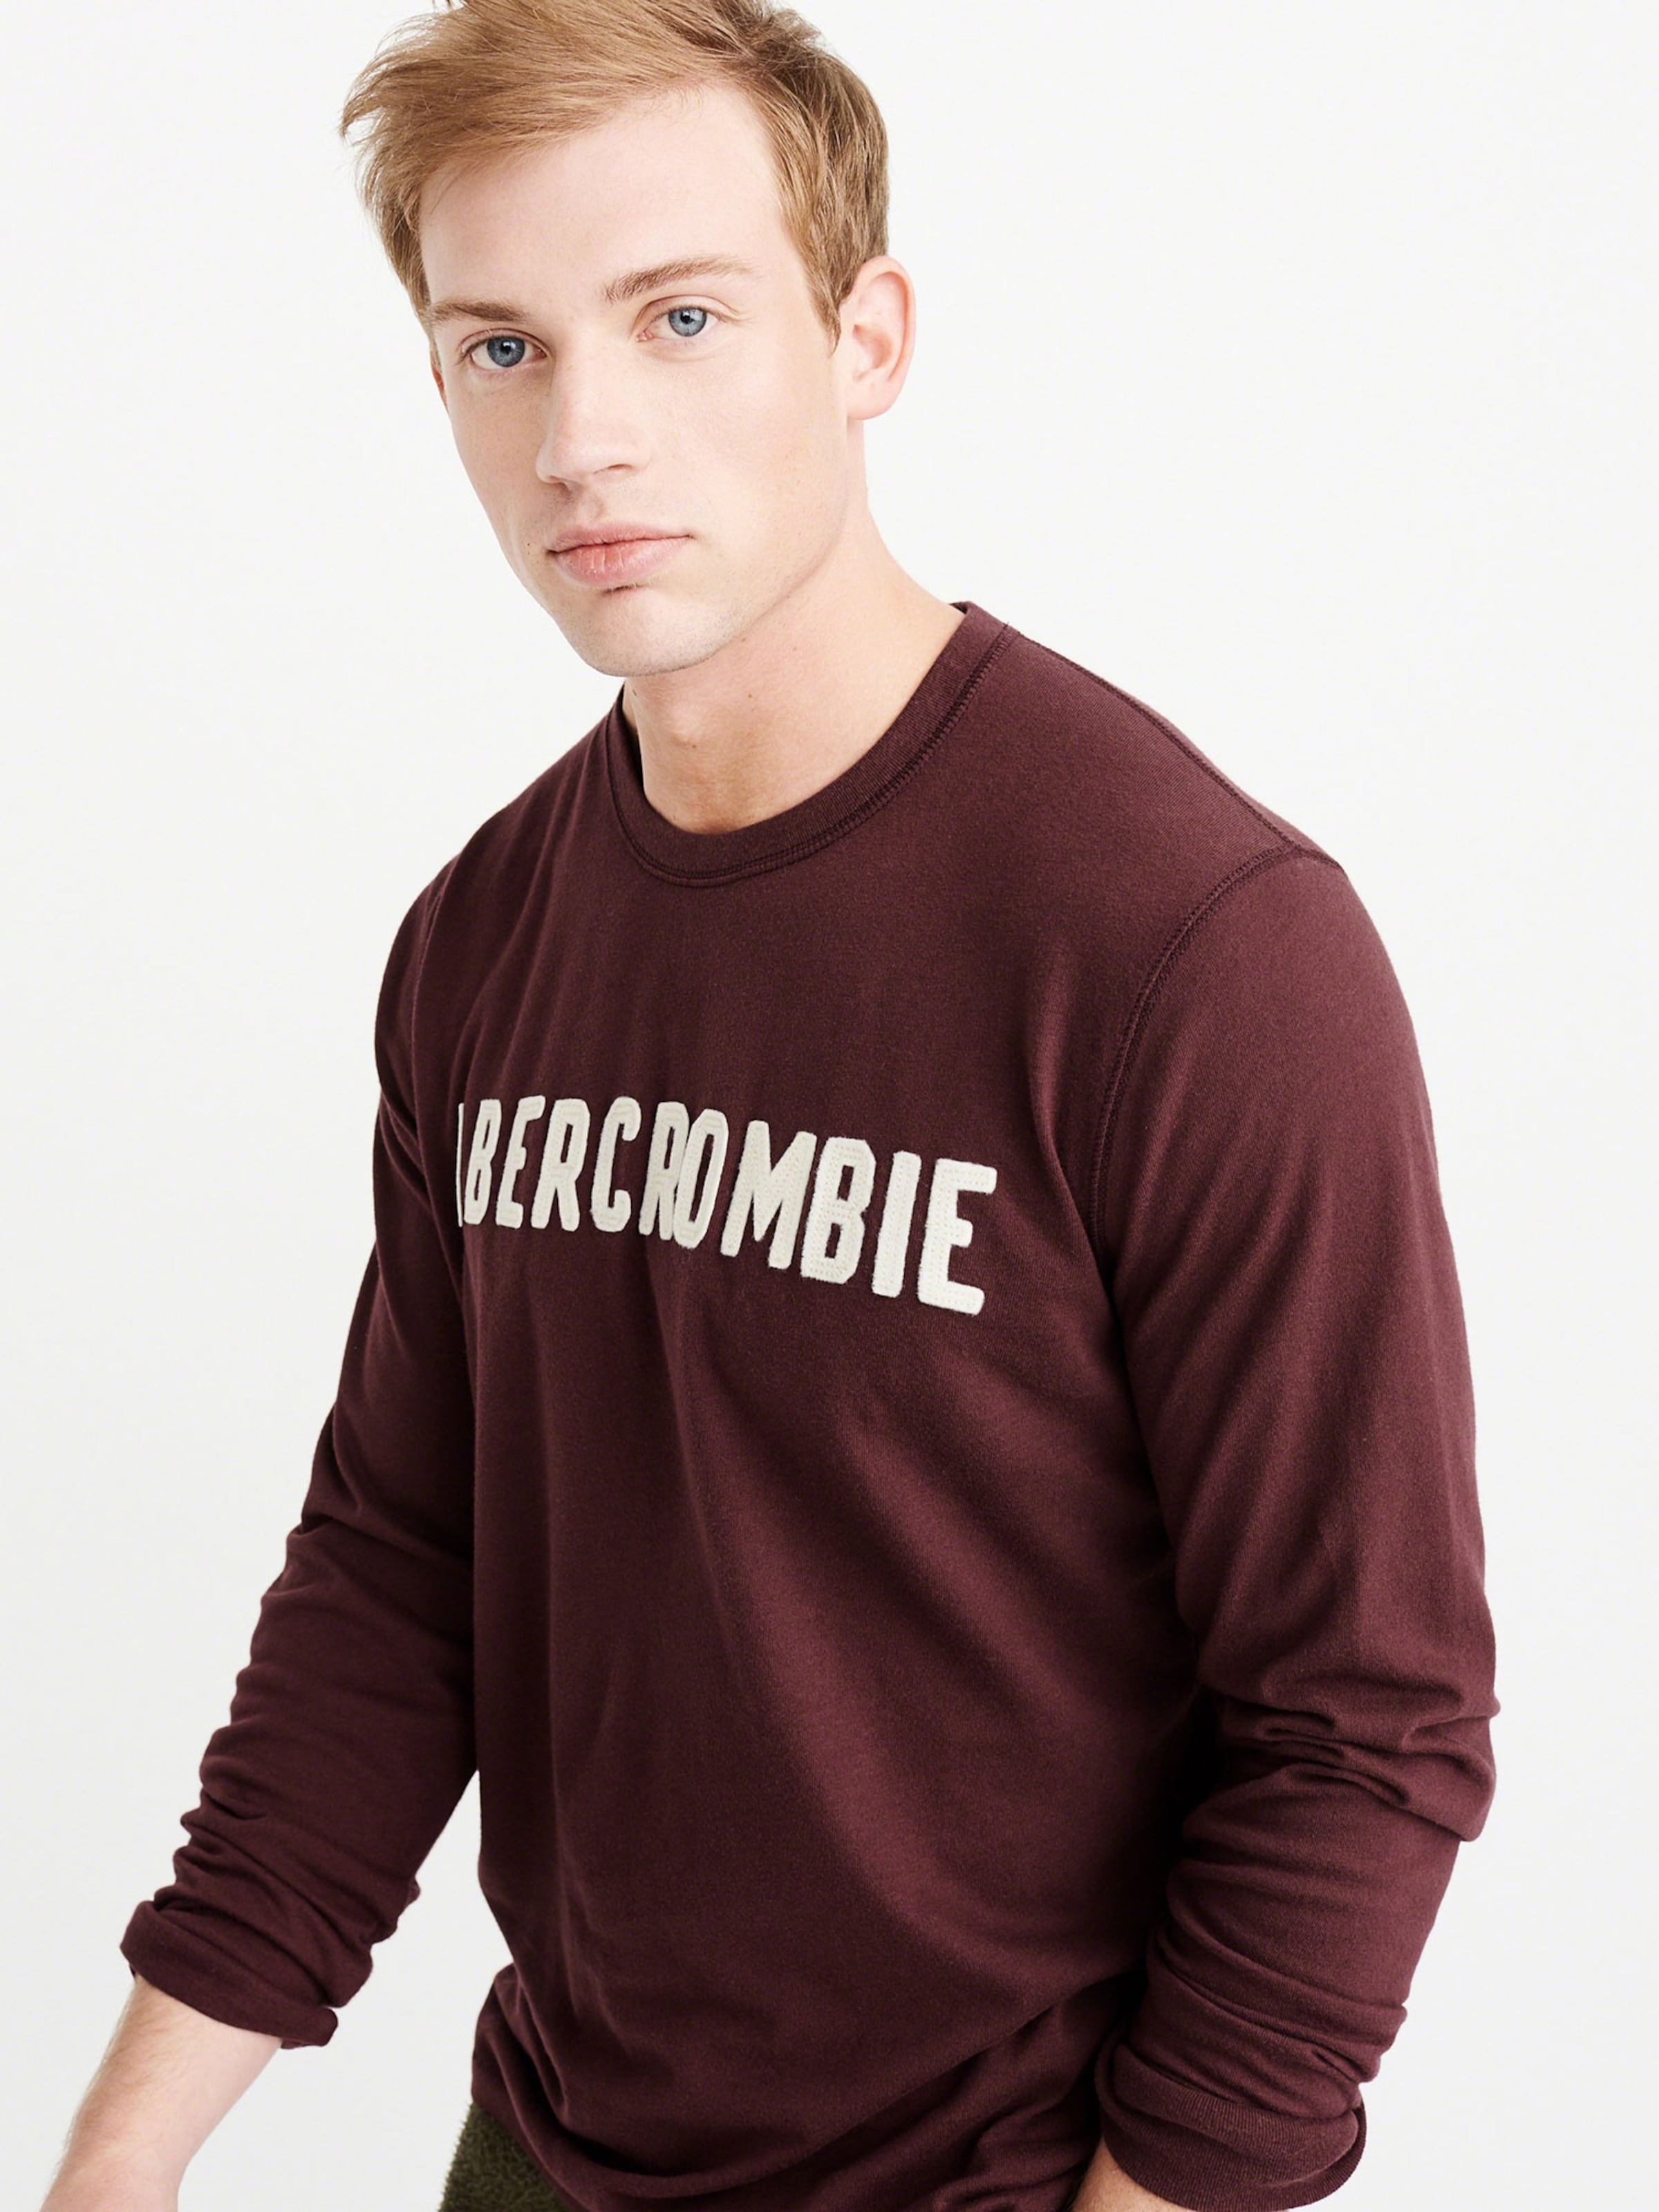 Dtc Ls Tech' Fitch Burgunder Shirt In 'glbl Abercrombieamp; uXikPZ